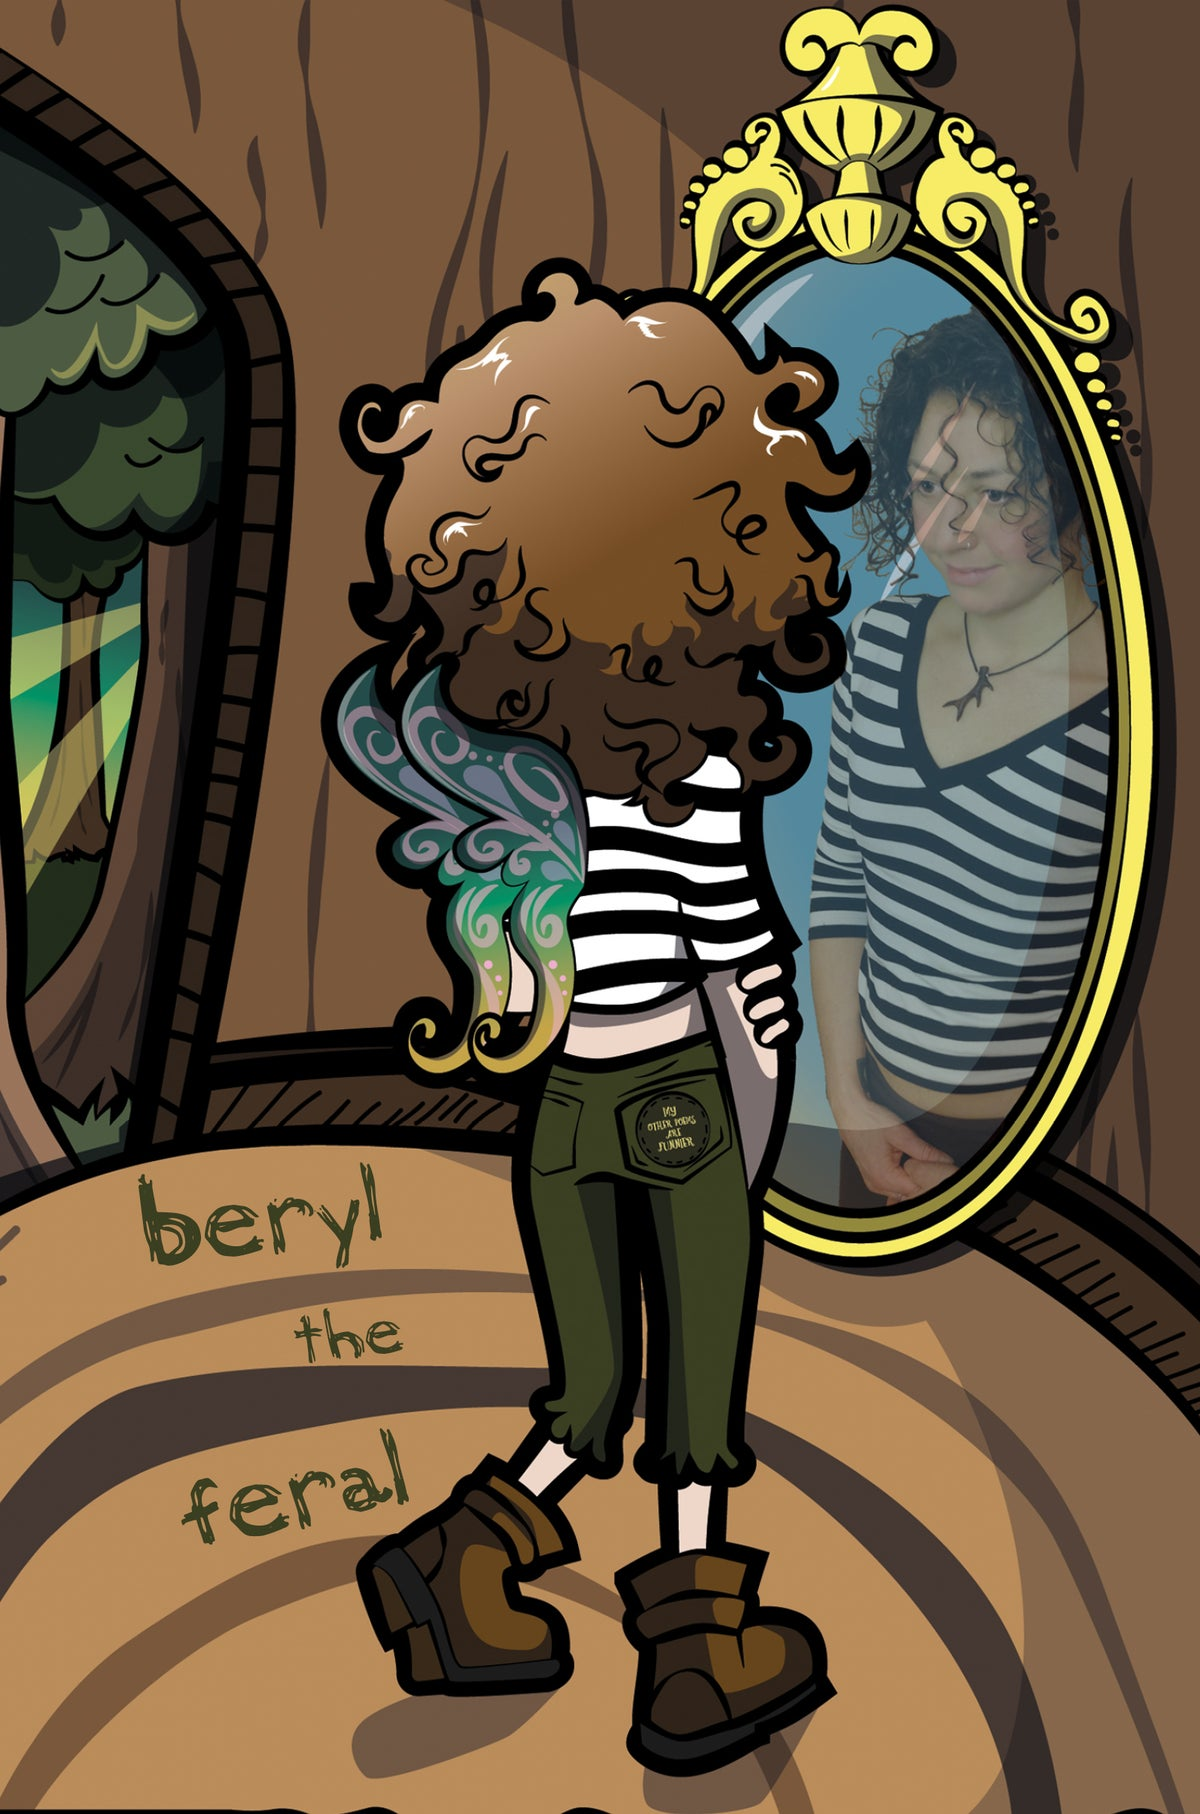 Image of My Other Poems are Funnier by Beryl the Feral